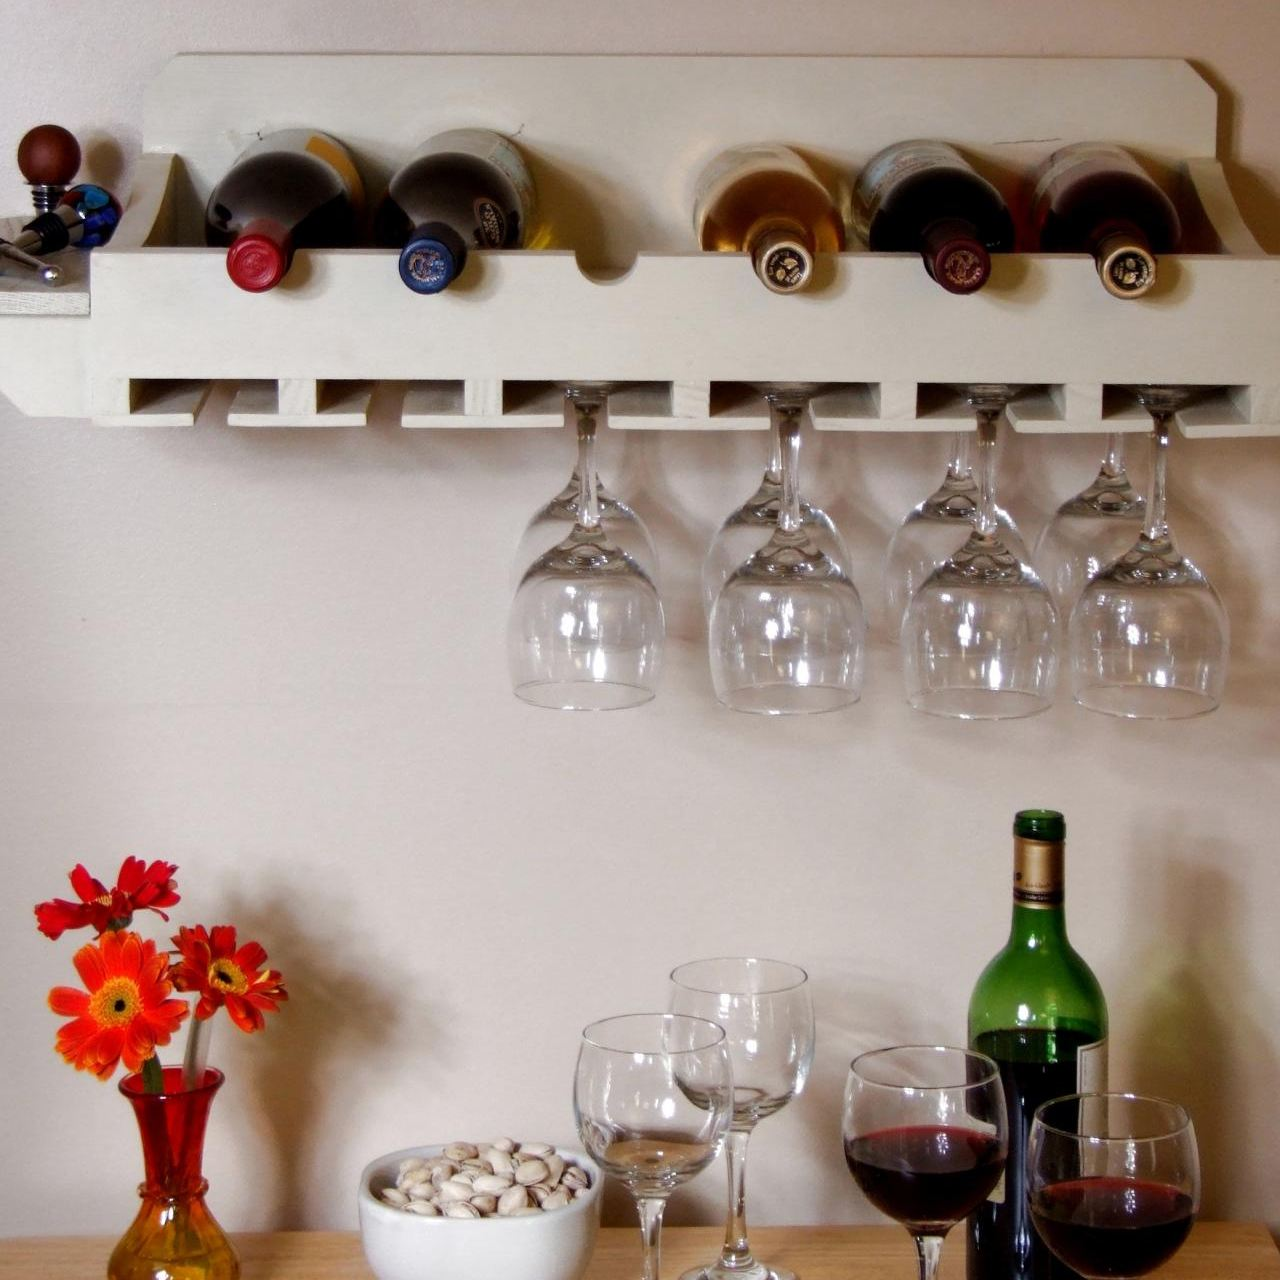 can you put a wine rack in living room decorating ideas for curtains rooms 13 free diy plans build today with places bottles and glasses